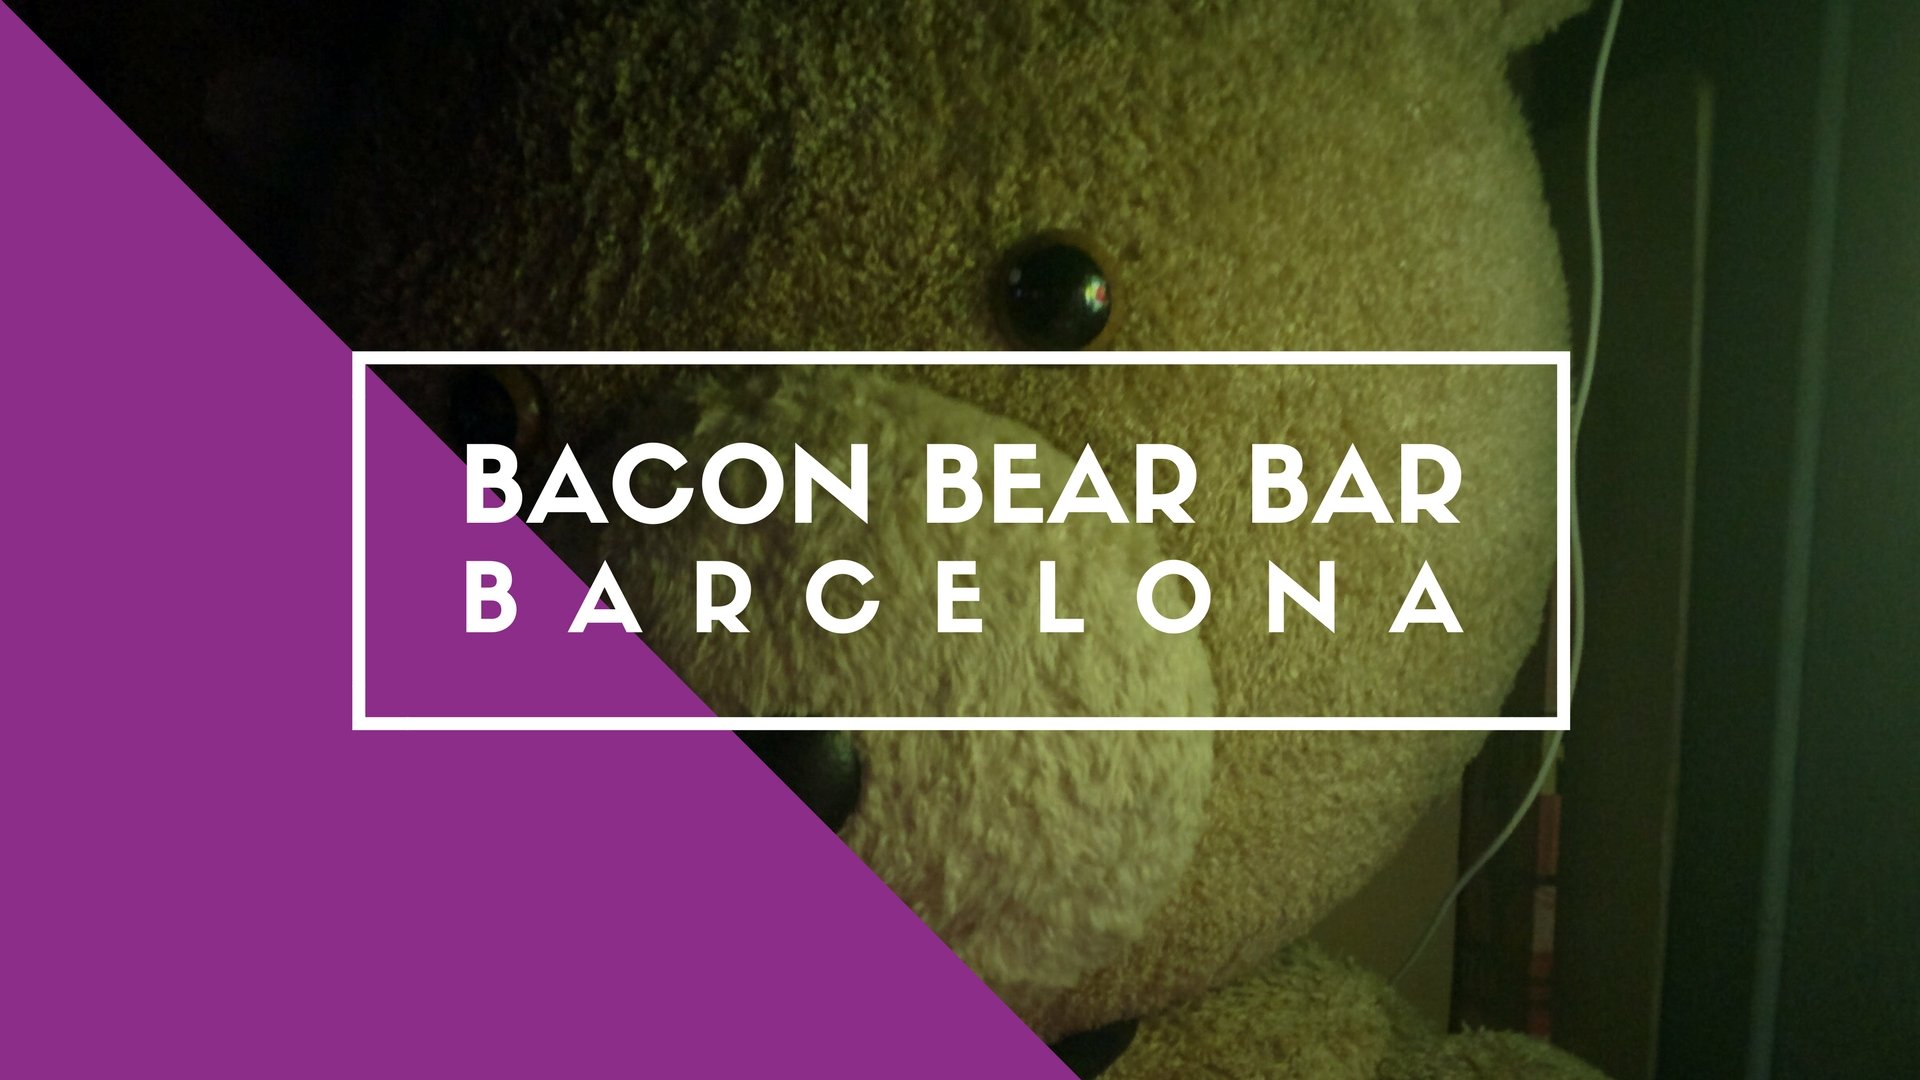 Bacon Bear Bar, Barcelona